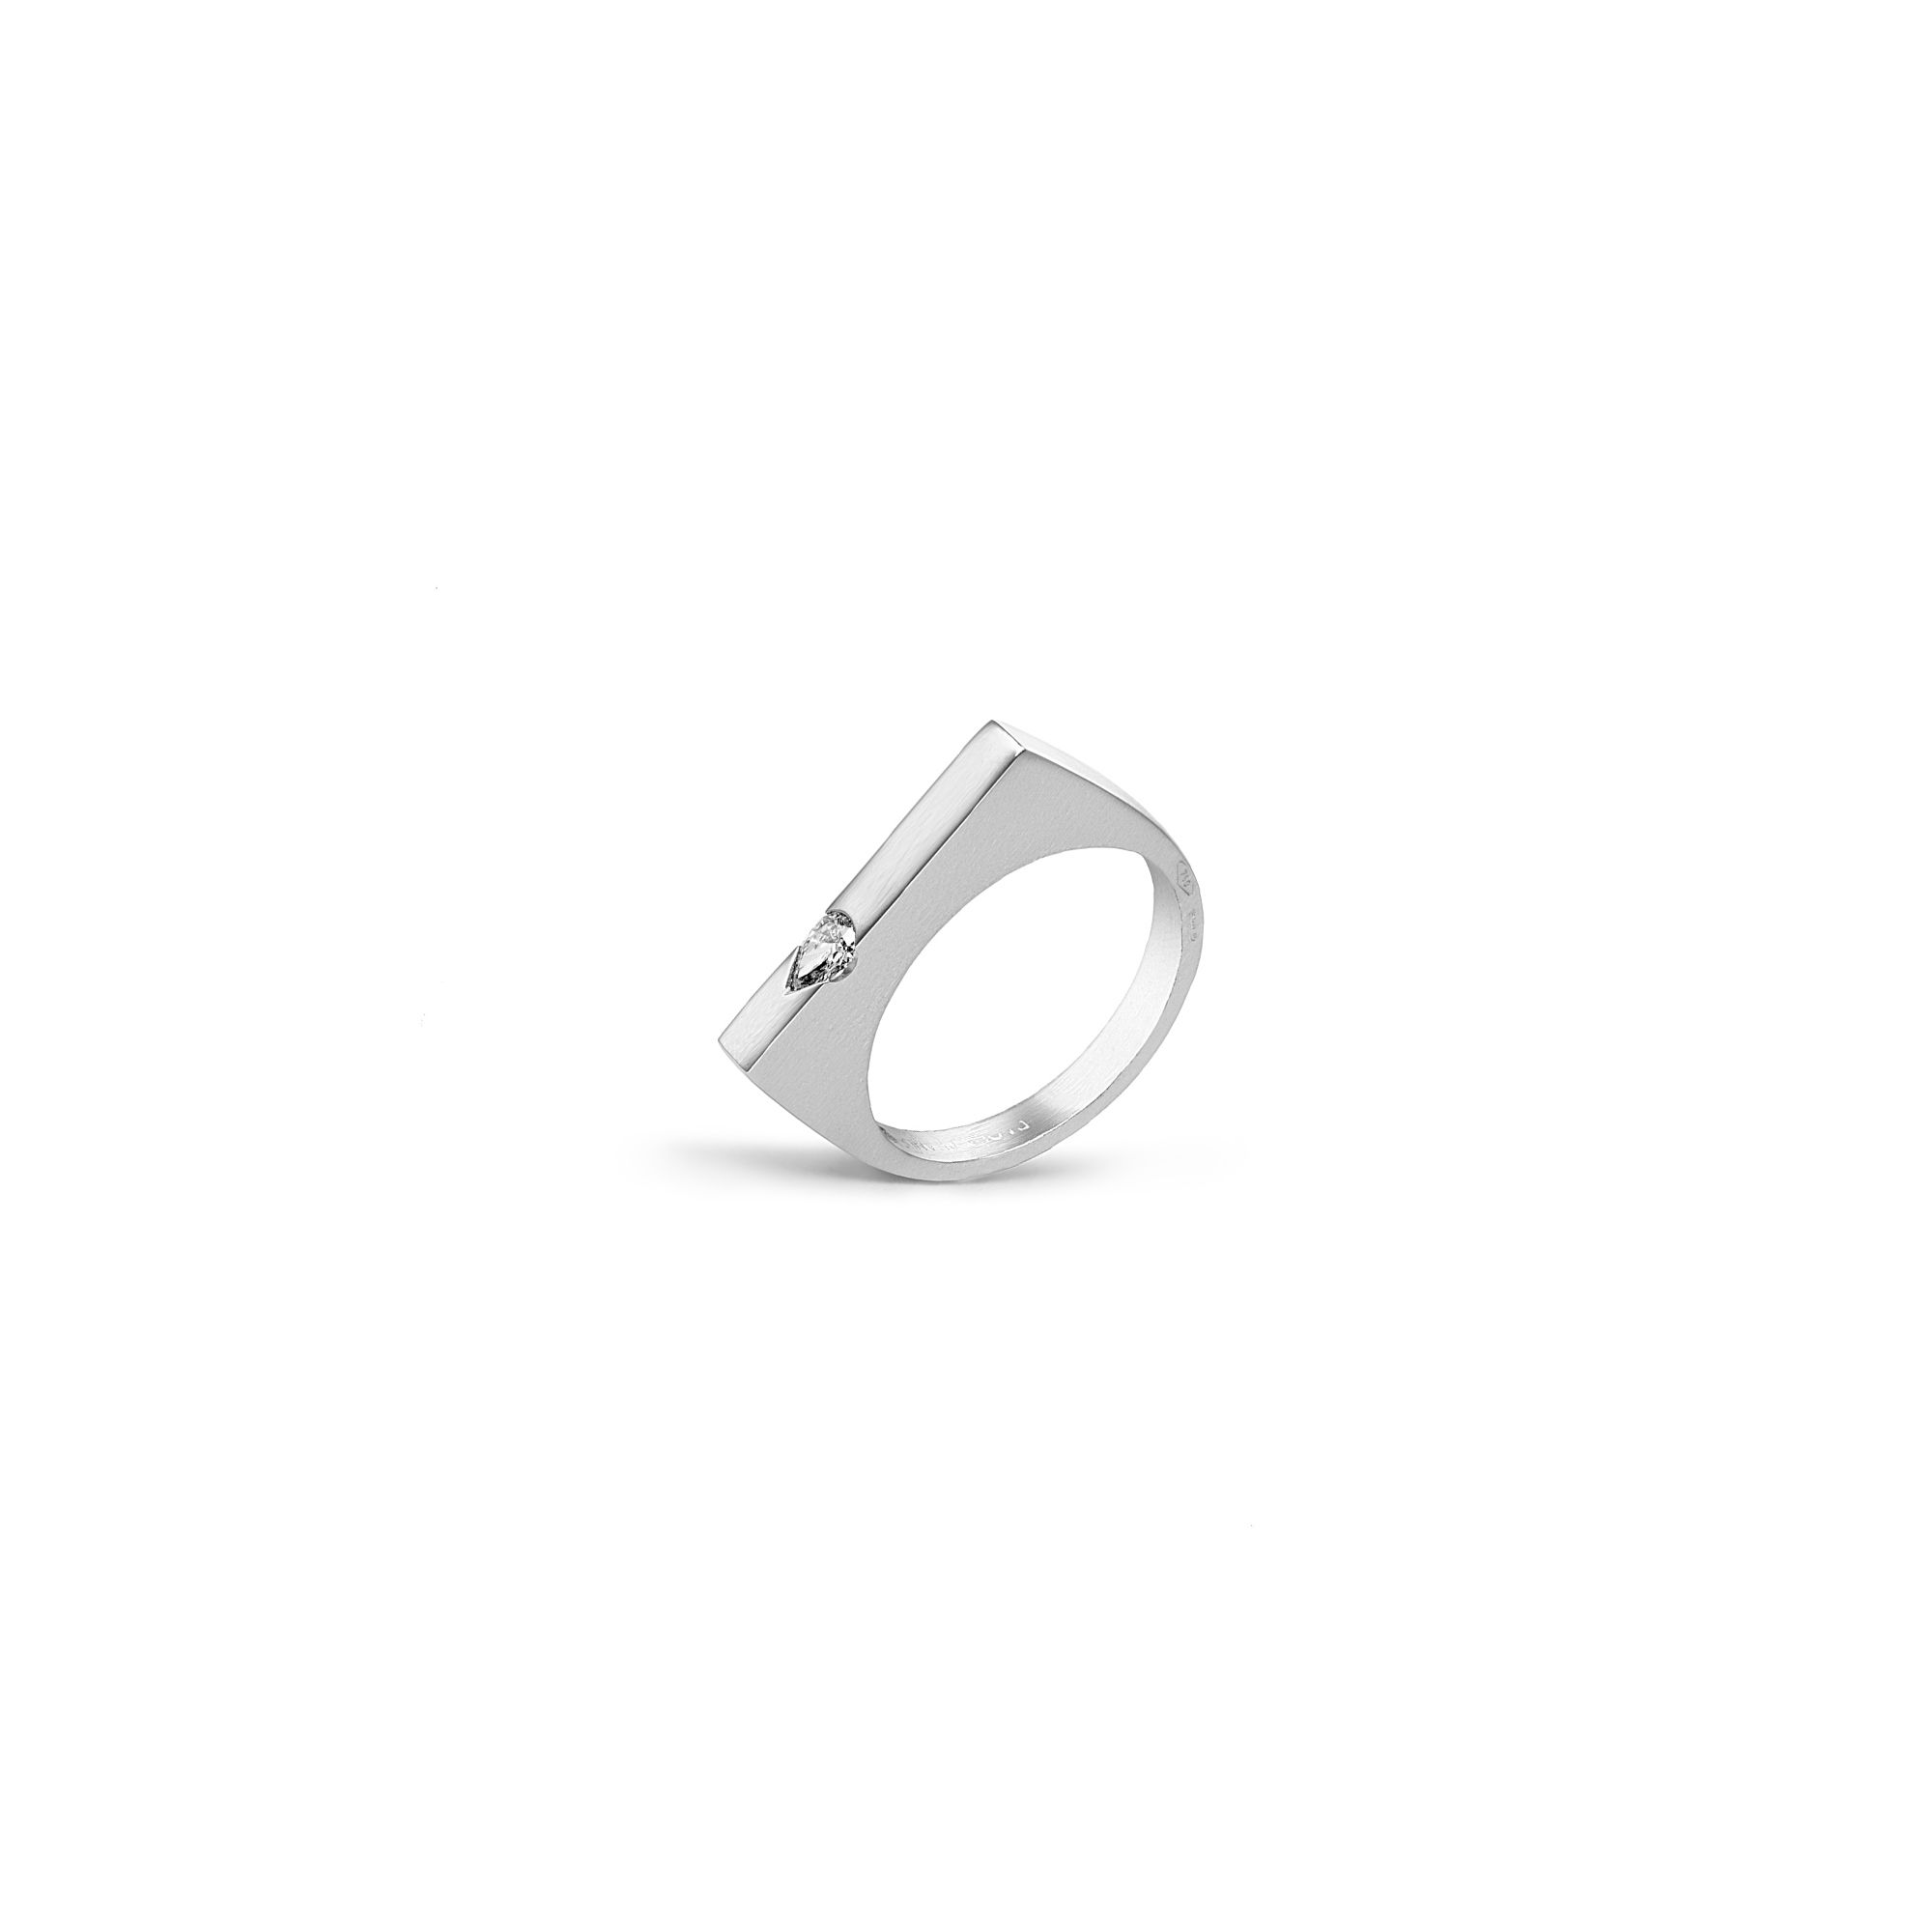 Modular 'Congiunzioni' ring with drop White gold ring with diamonds